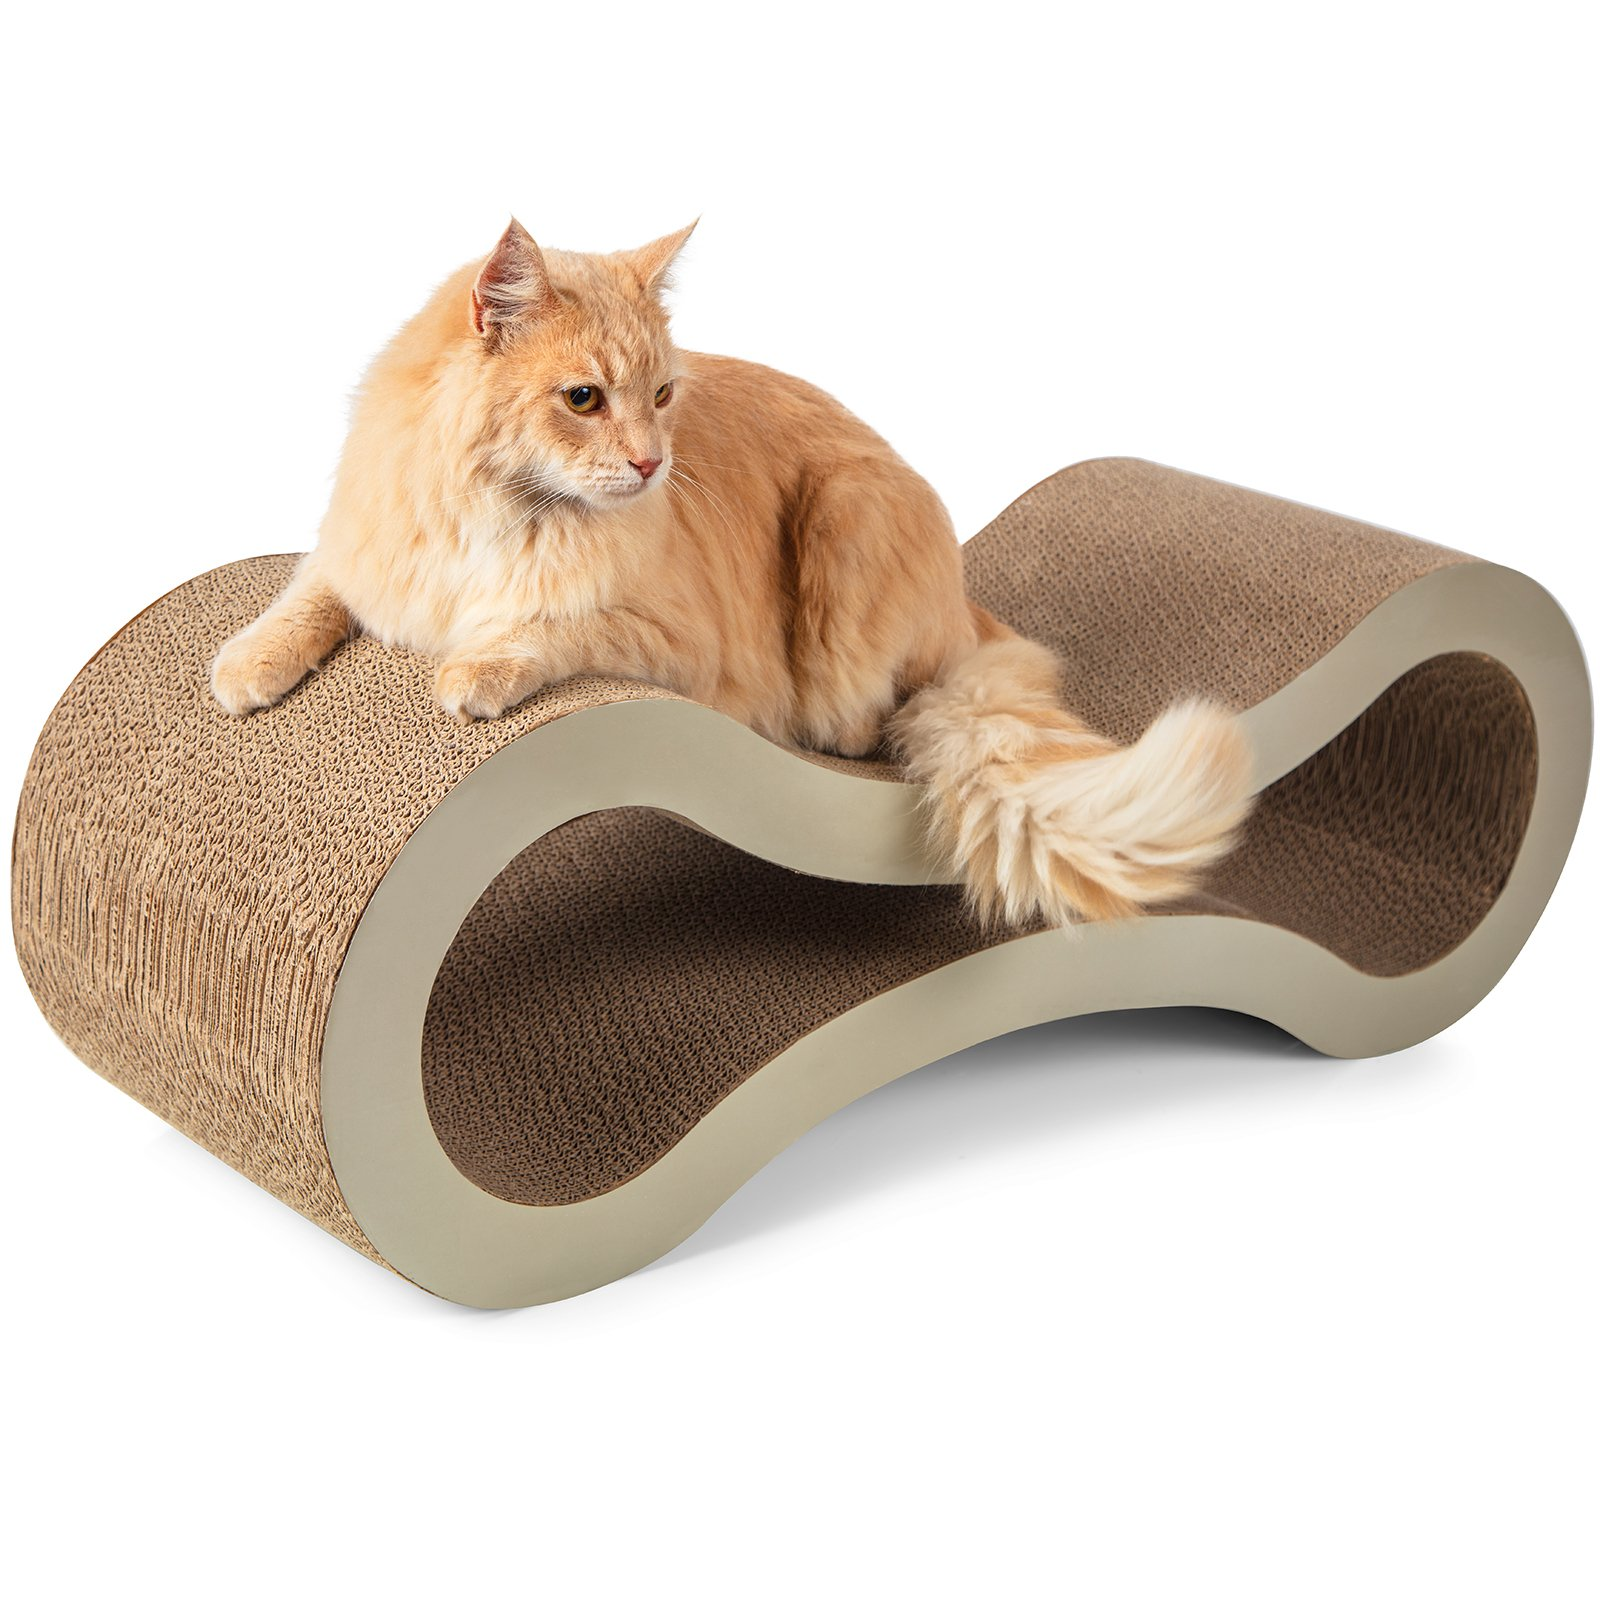 "Paws & Pals Cat Scratcher Lounge Post 32""x11""x11"" Inches Cardboard Furniture Construction with Catnip"